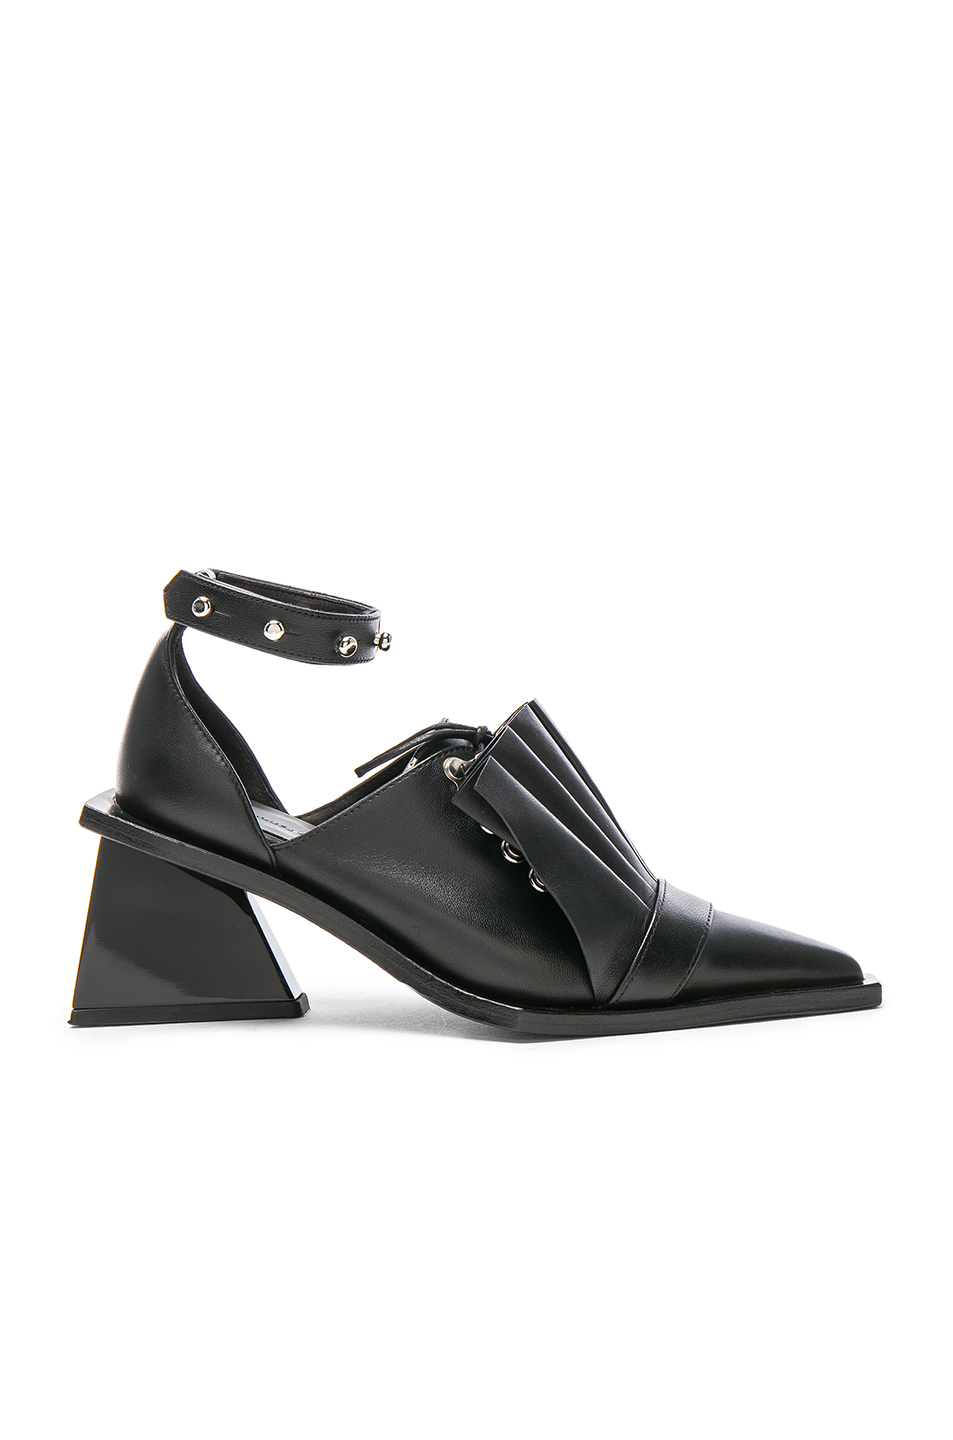 Marques ' Almeida Pointy Frill Lace Up Leather Shoes in Black